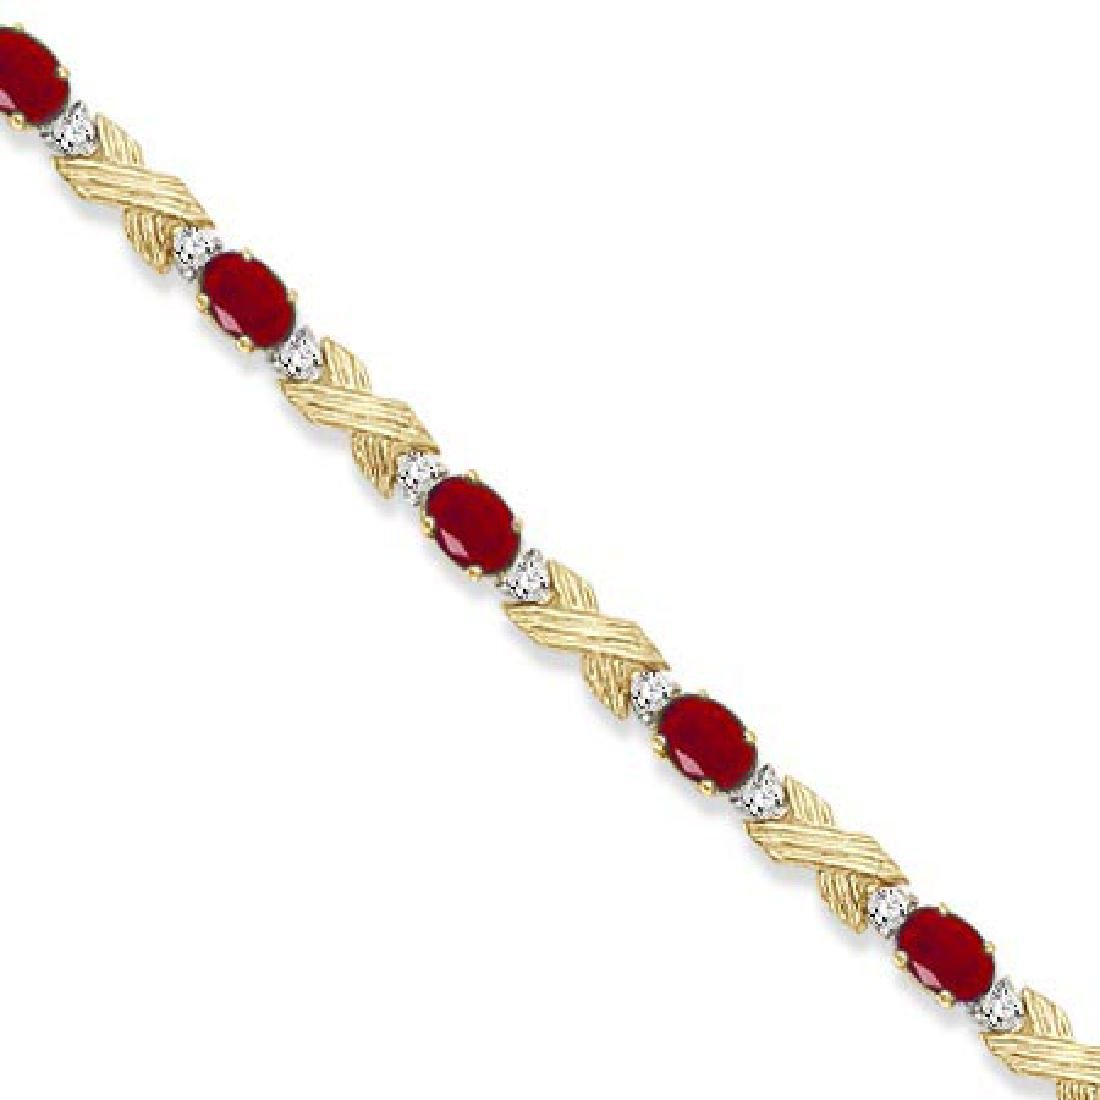 Ruby and Diamond XOXO Link Bracelet in 14k Yellow Gold